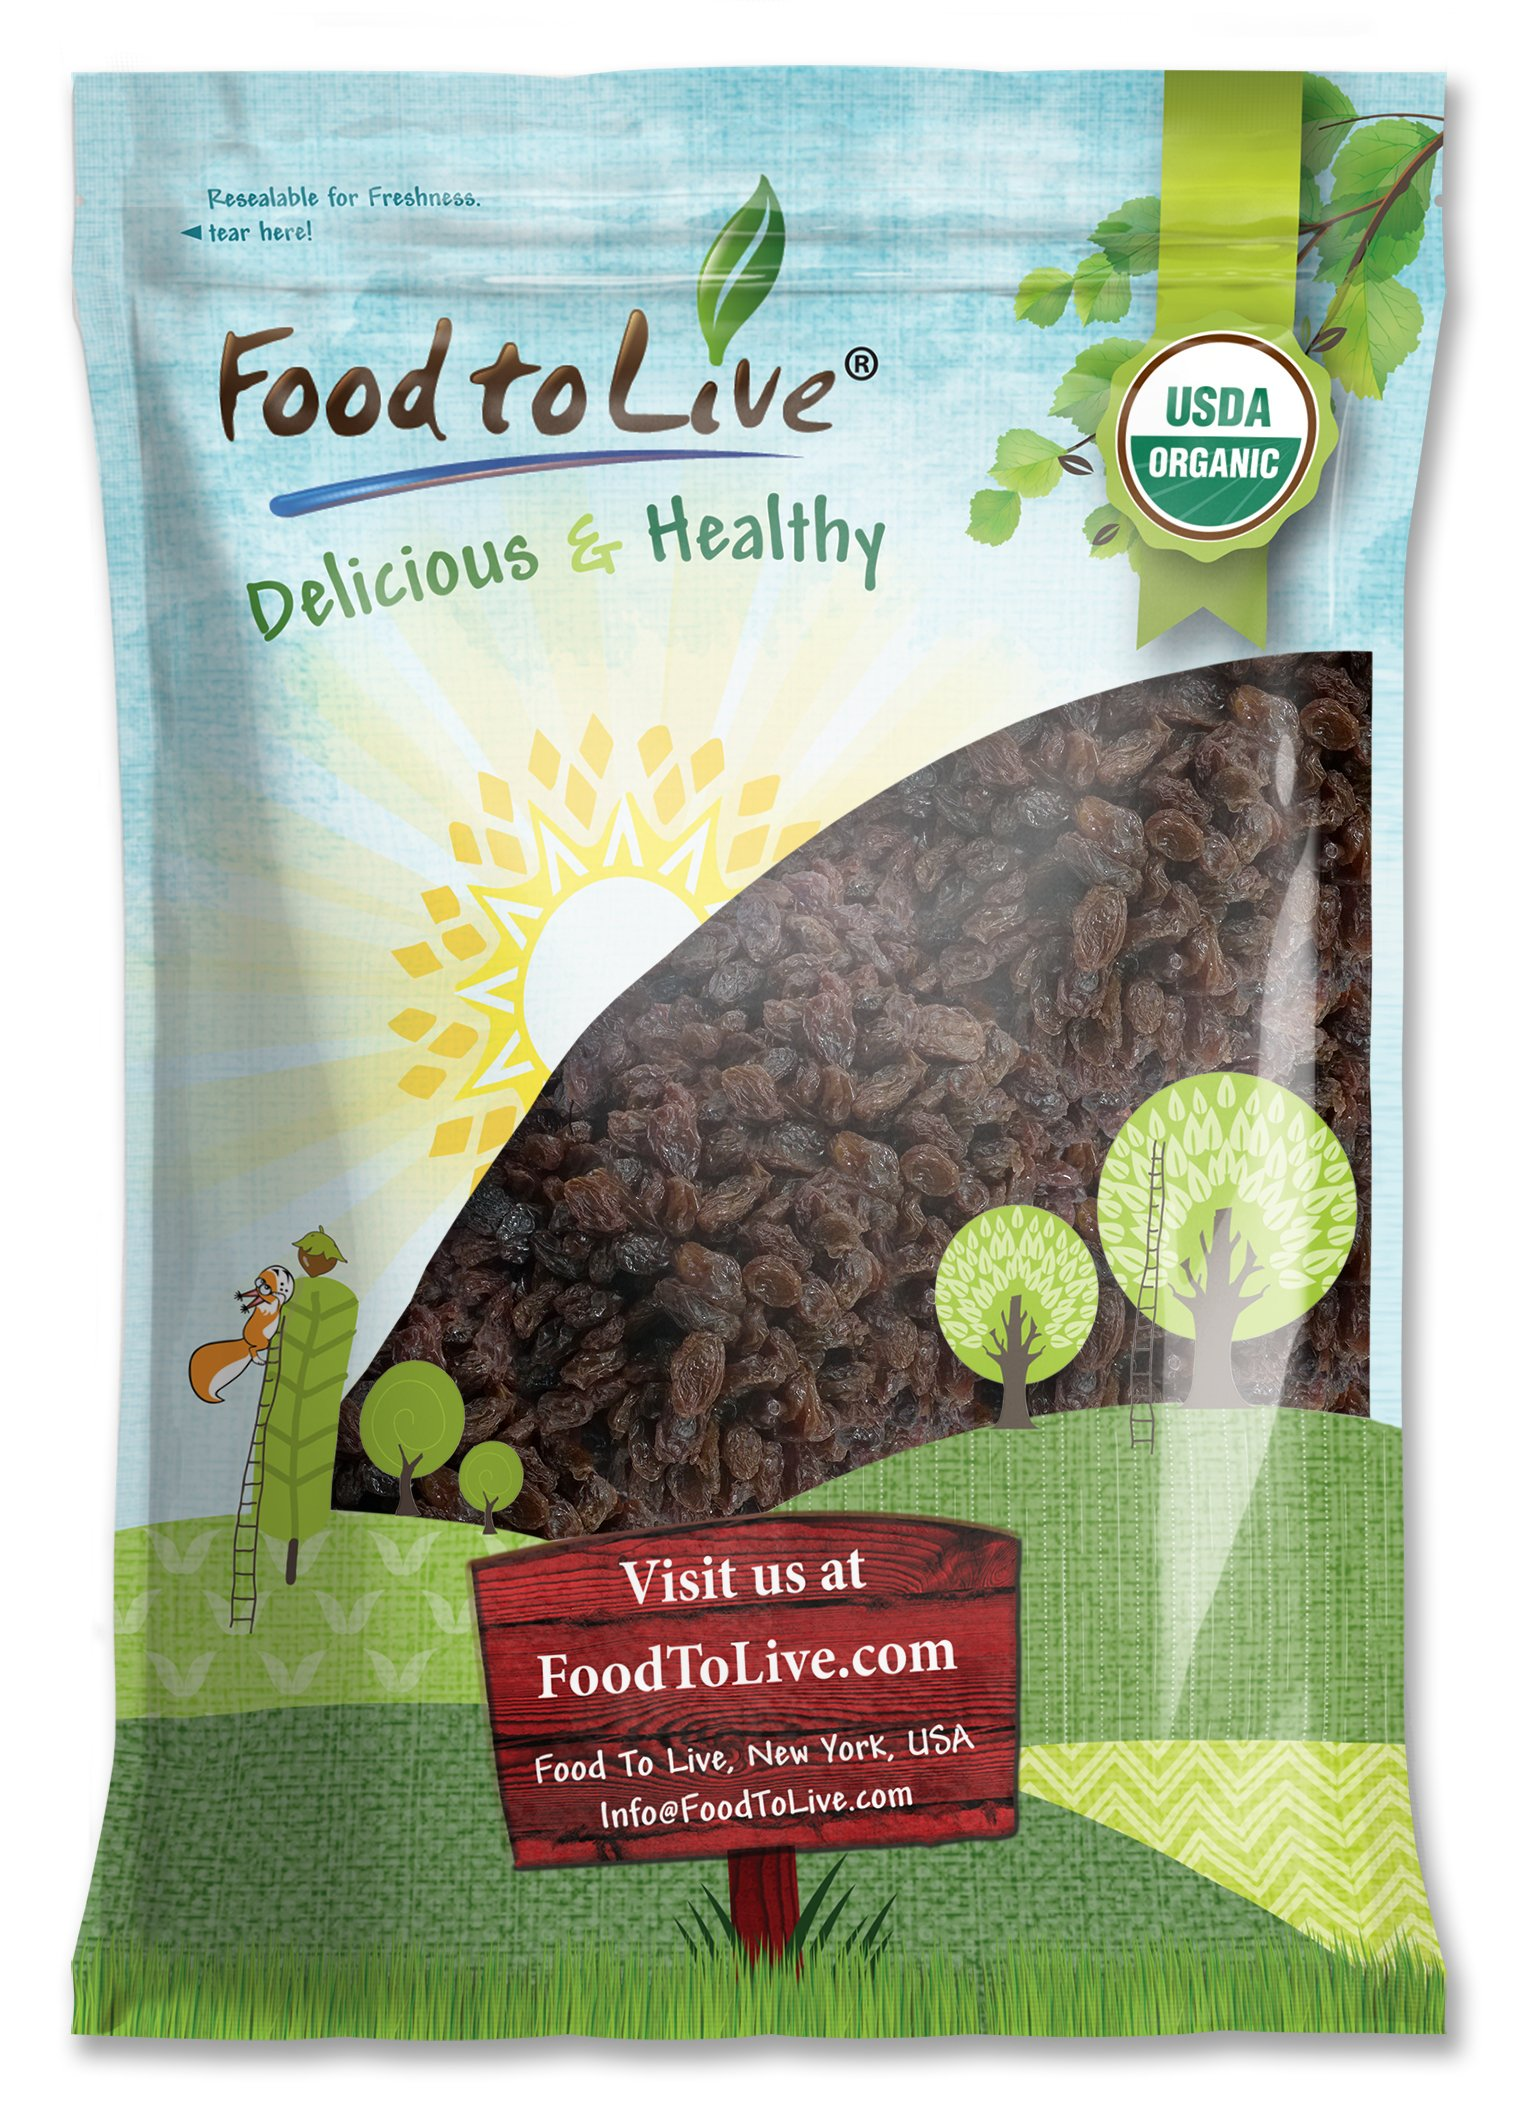 Organic California Thompson Seedless Raisins by Food To Live (Sun-Dried, Non-GMO, Kosher, Unsulphured, Bulk, Lightly Coated with Organic Sunflower Oil) - 8 Pounds by Food To Live